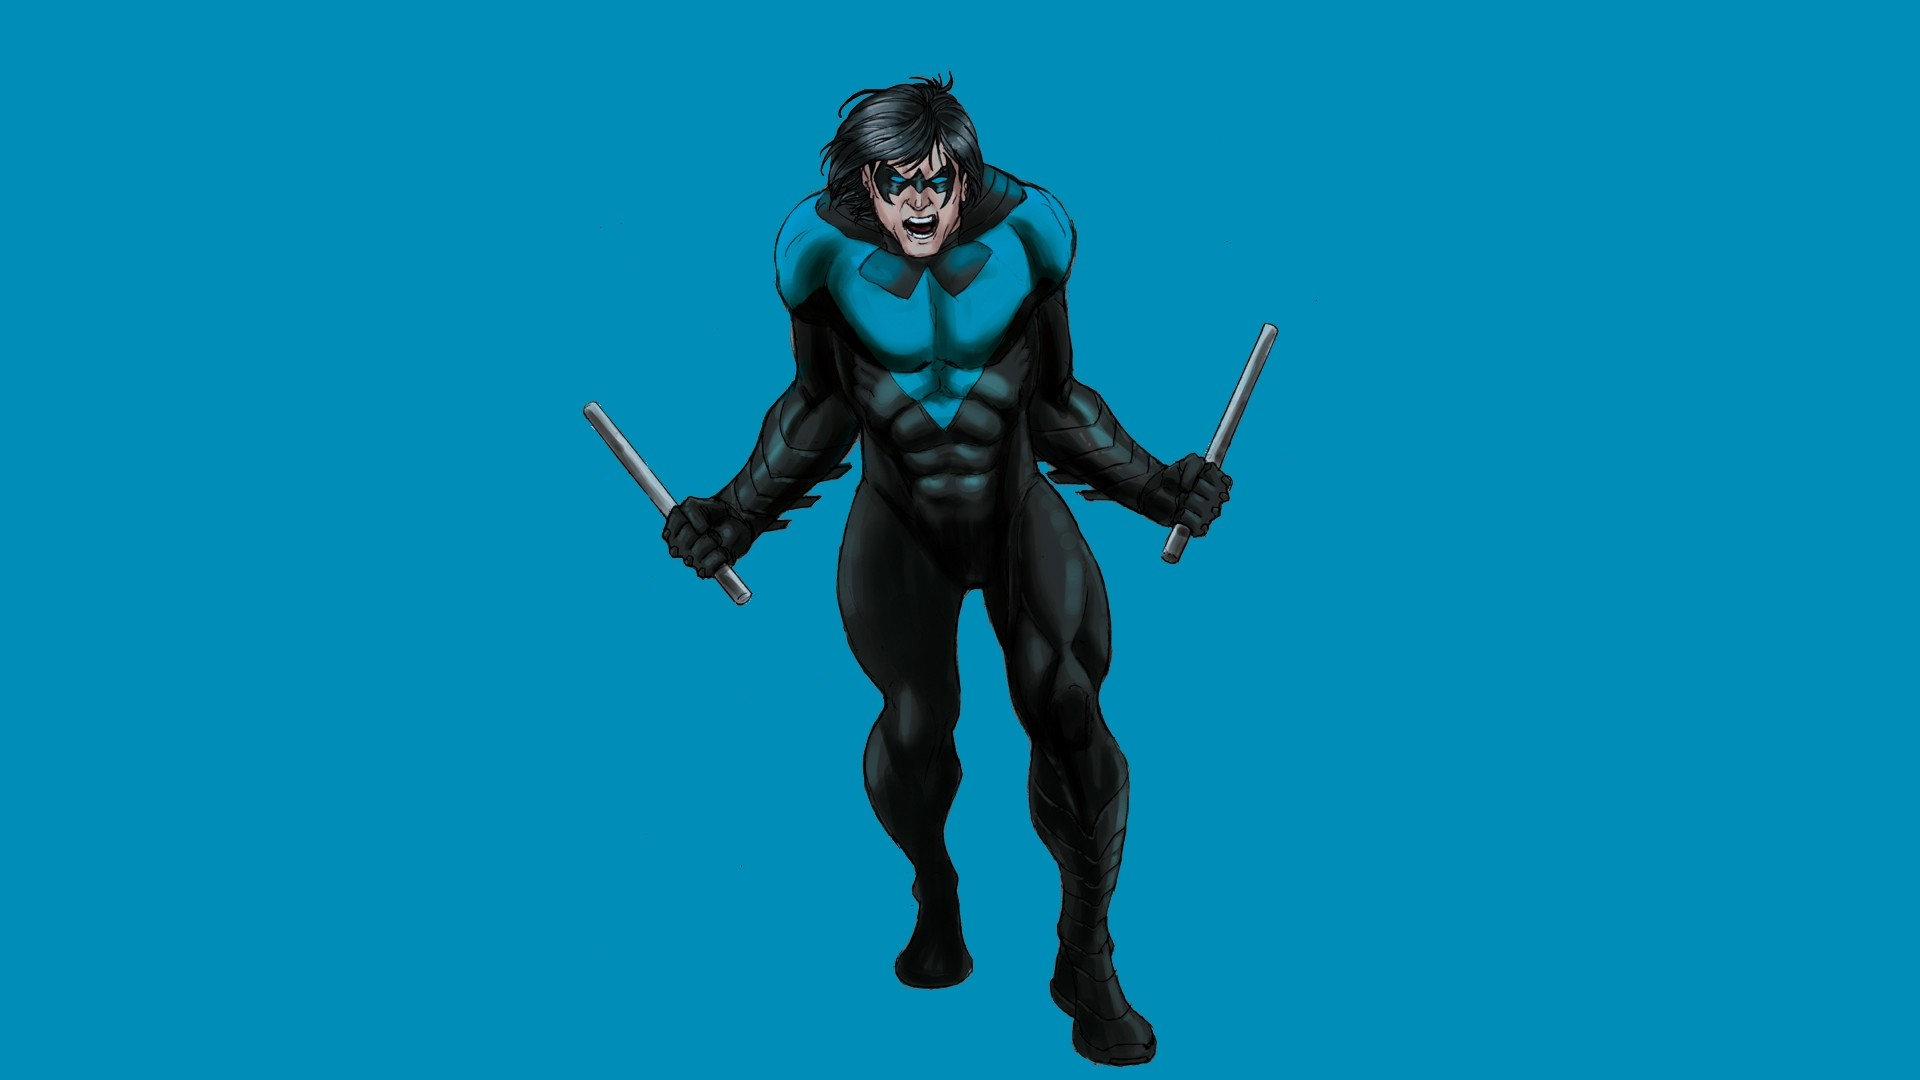 1920x1080 Nightwing Wallpaper Iphone Comics - nightwing wallpaper